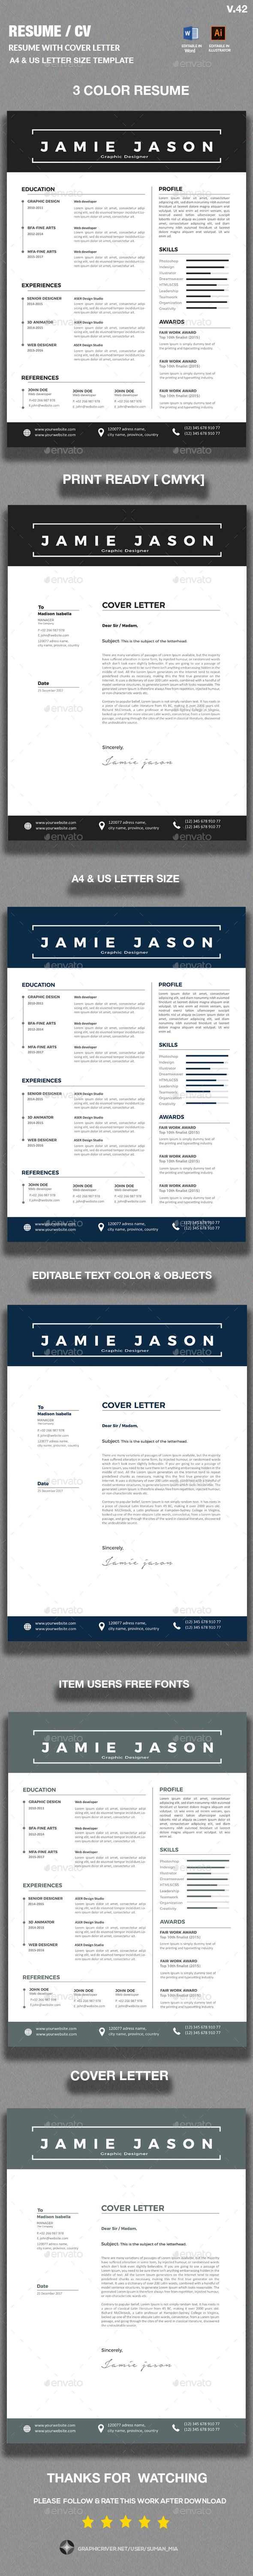 Professional Quotation Template Awesome 9 Best Work Images On Pinterest  Infographic Invoice Layout And Resume